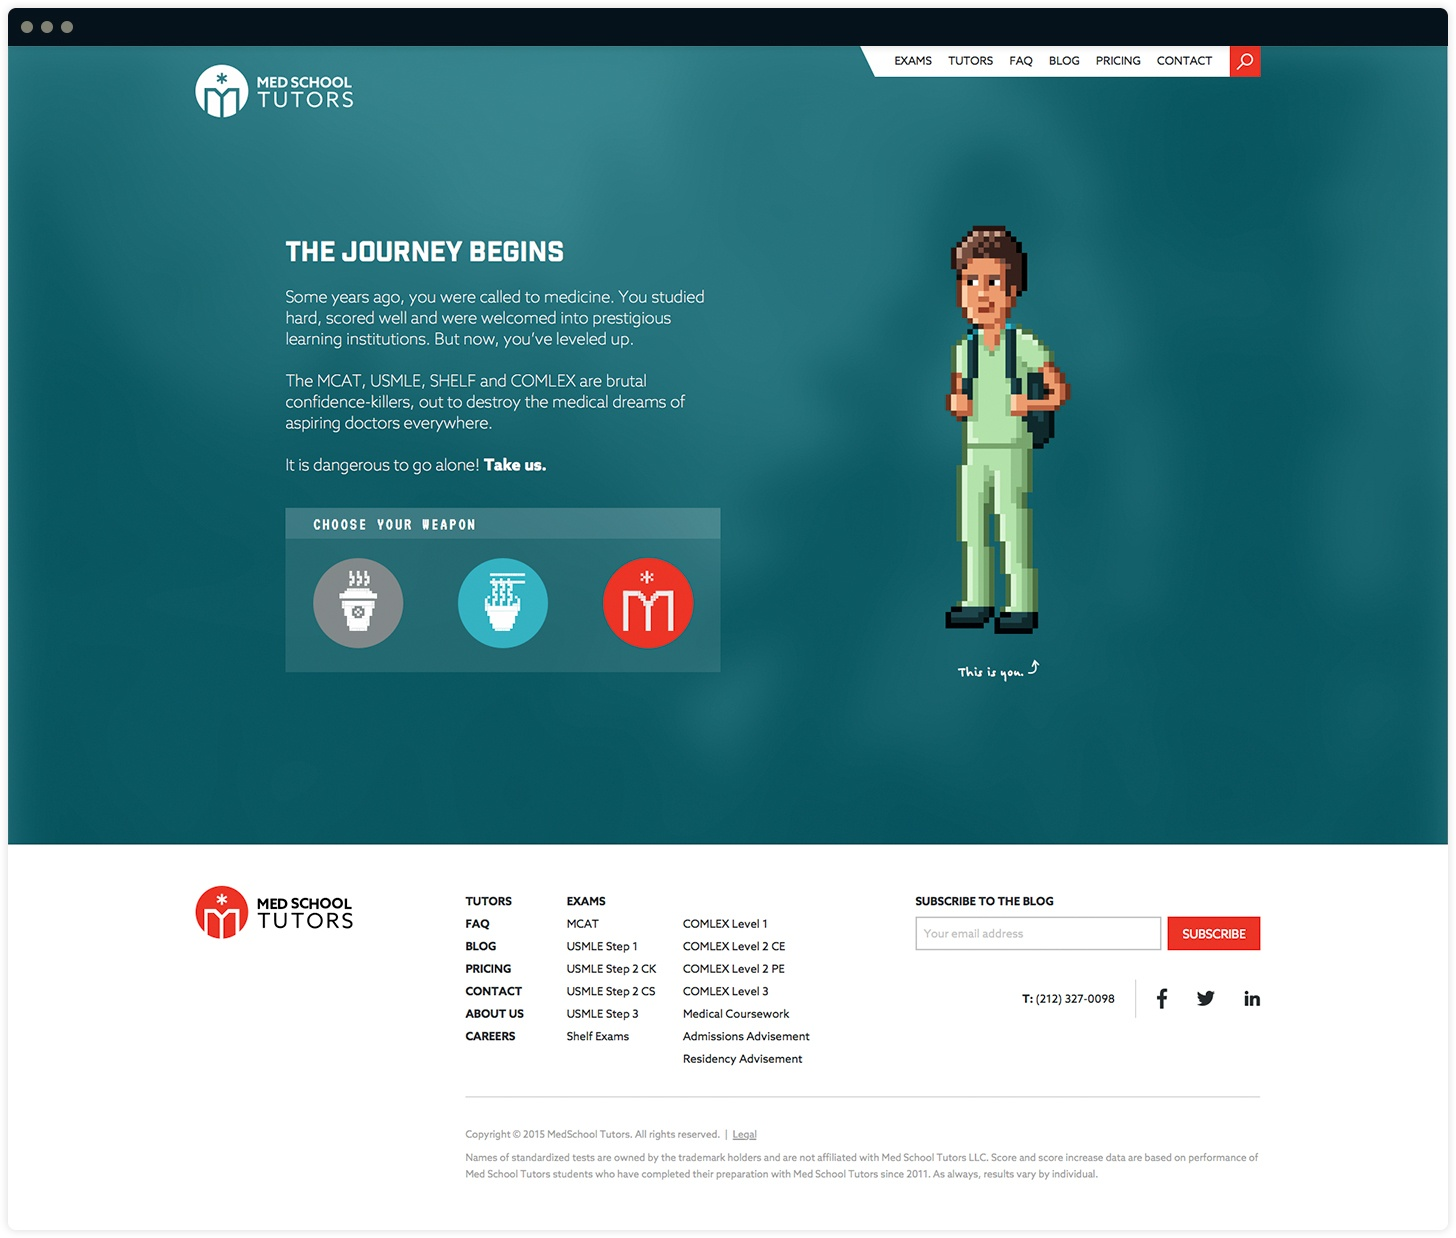 Med School Tutors Homepage Interactive Journey Design by Salted Stone